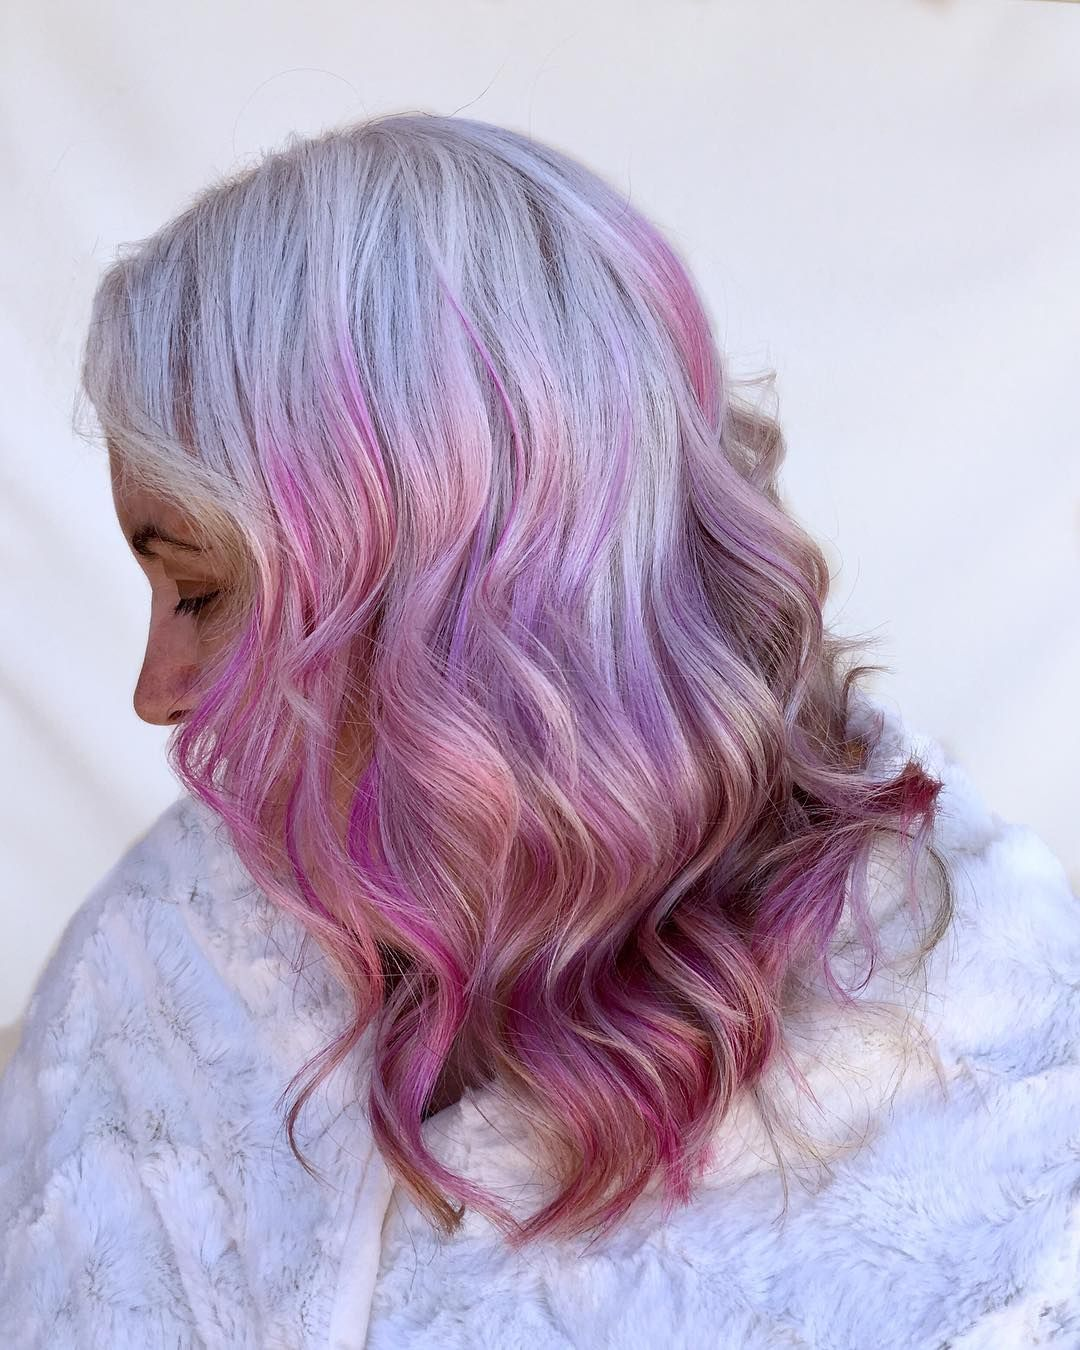 Snow White Pastels This Beautiful Client Of Mine Had Naturally White Hair The Perfect Canvas For Colour Rainbow H Artistic Hair Rainbow Hair Hair Styles